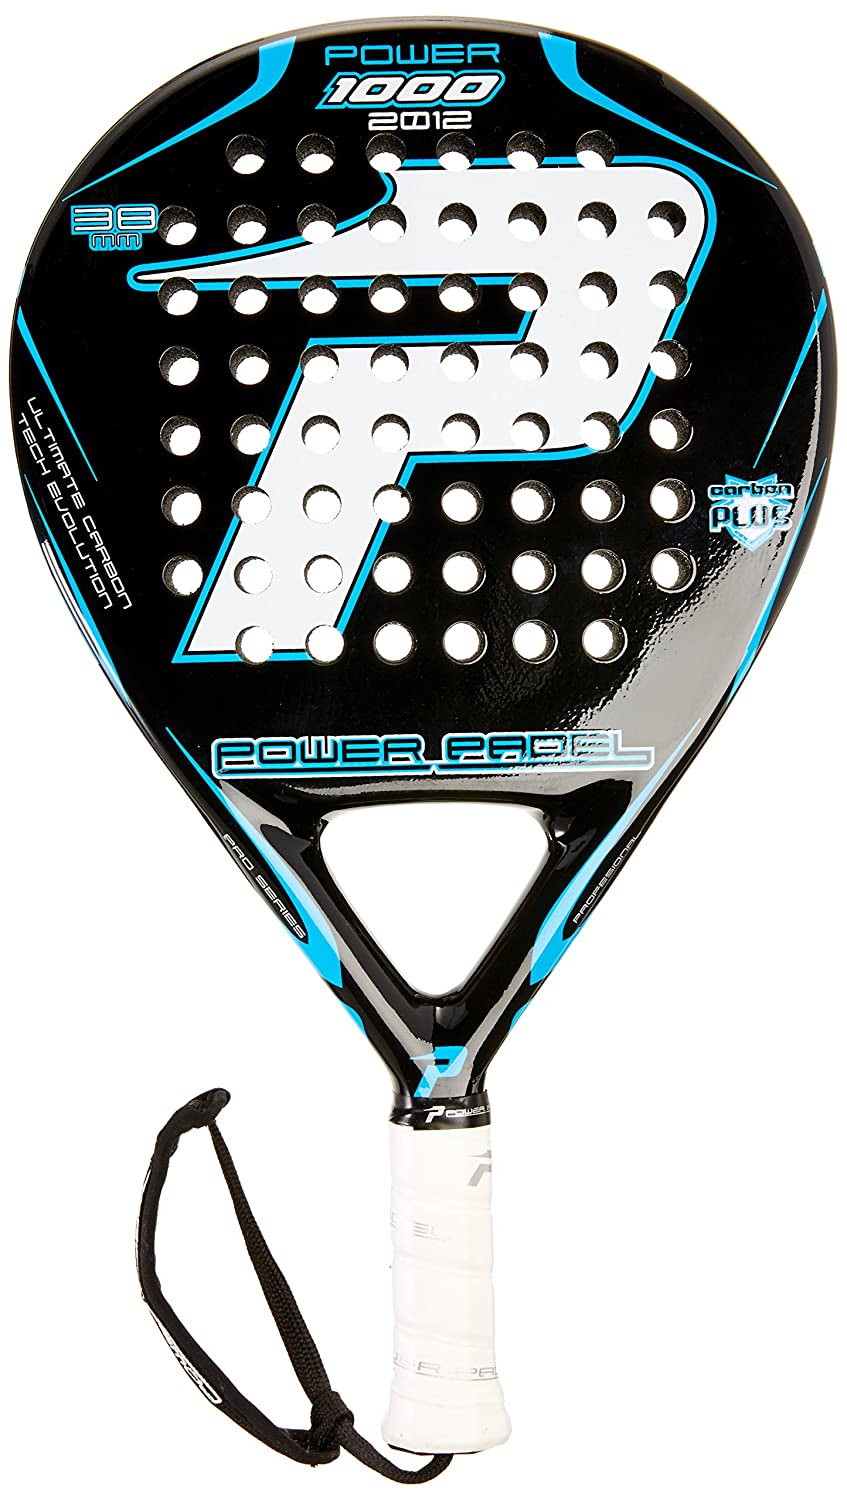 POWER PADEL 1000 2012 - Pala, Color Negro/Blanco, 38 mm ...